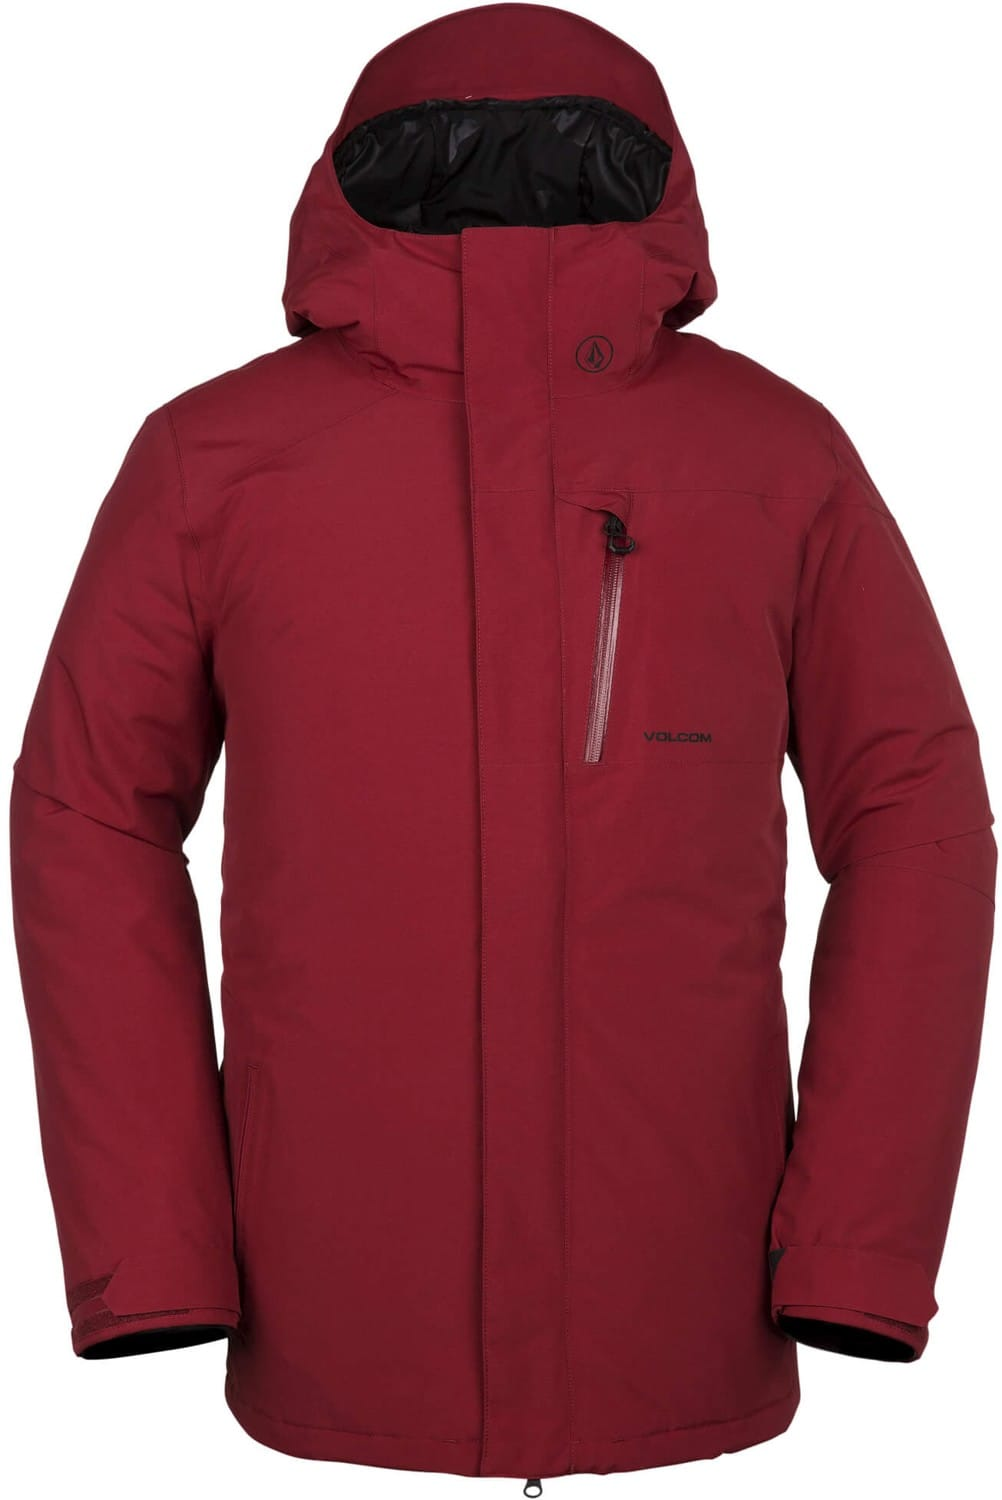 Volcom L Gore Tex Insulated Jacket 2019 Free Shipping